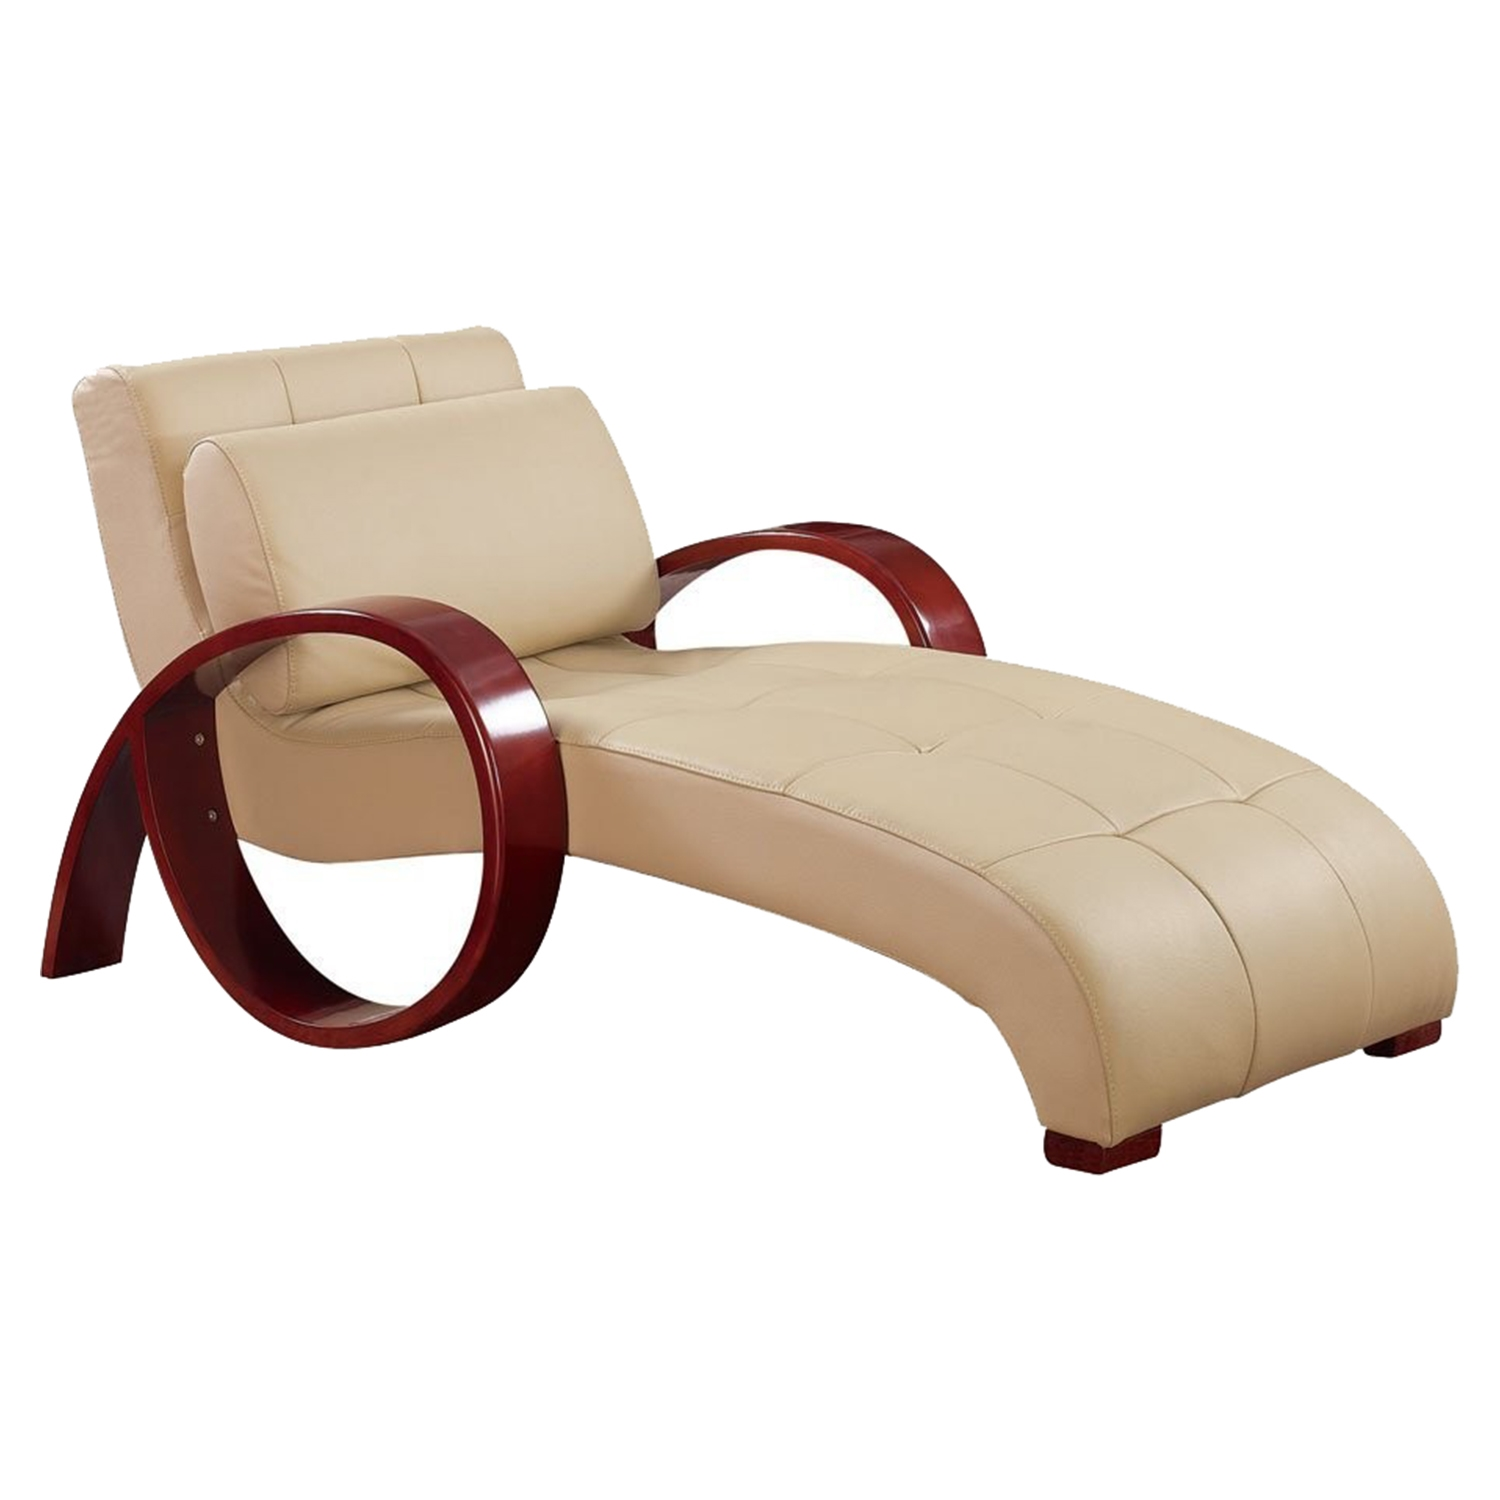 Relax Leather Chaise Lounge in Cappuccino - GLO-R963-RLX